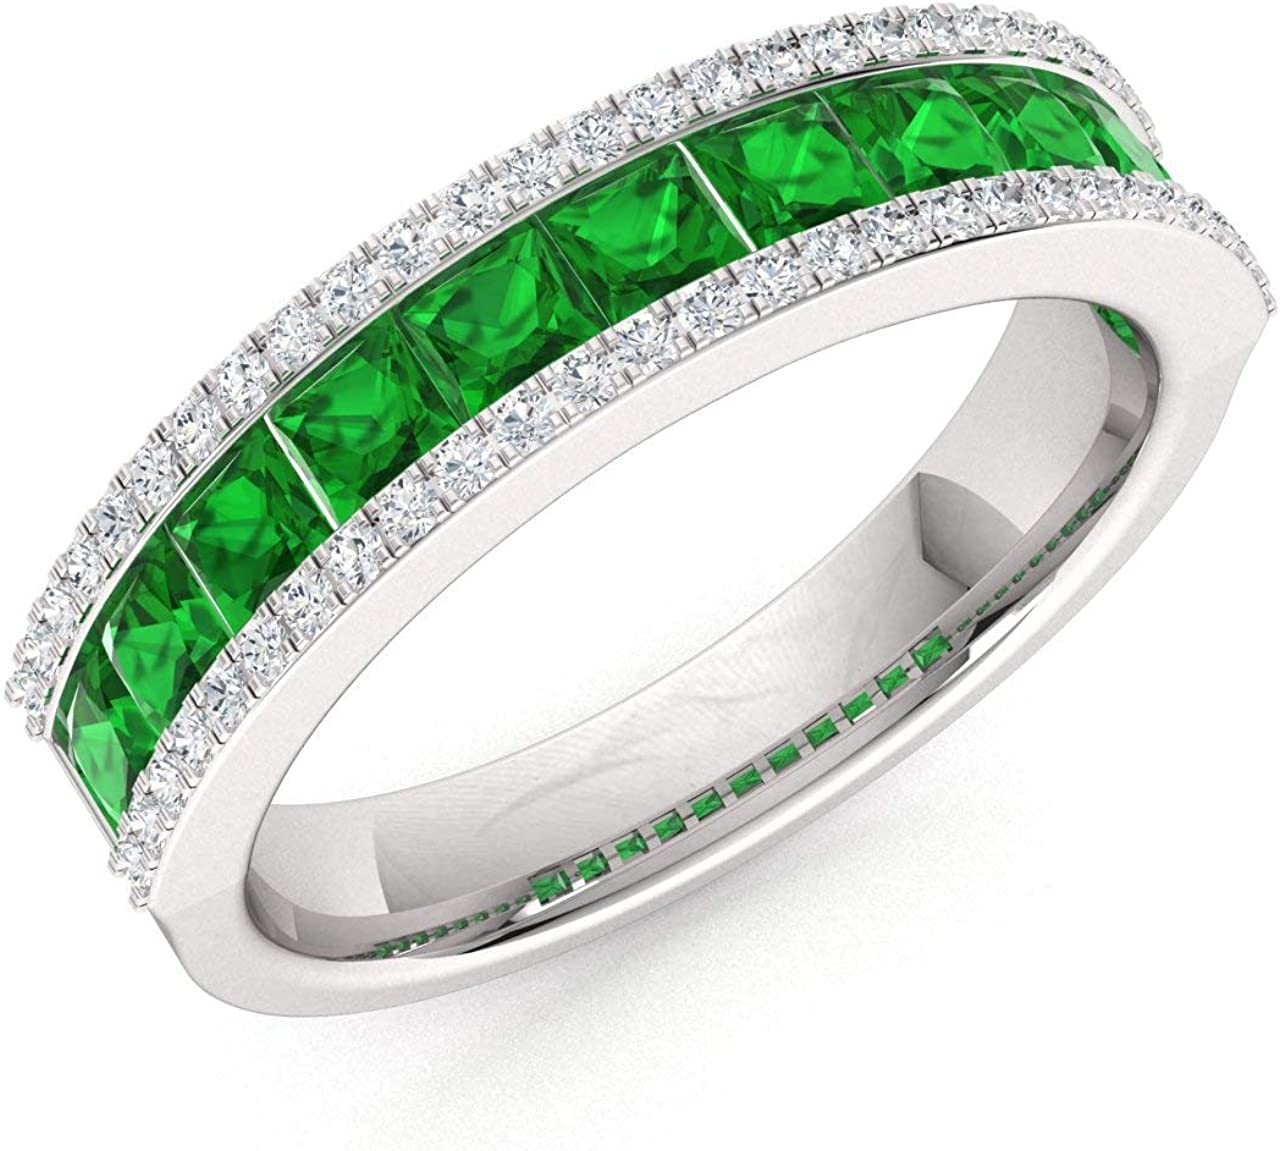 Diamondere Natural and low-pricing Certified Cut Recommendation Gemstone Diamo Princess